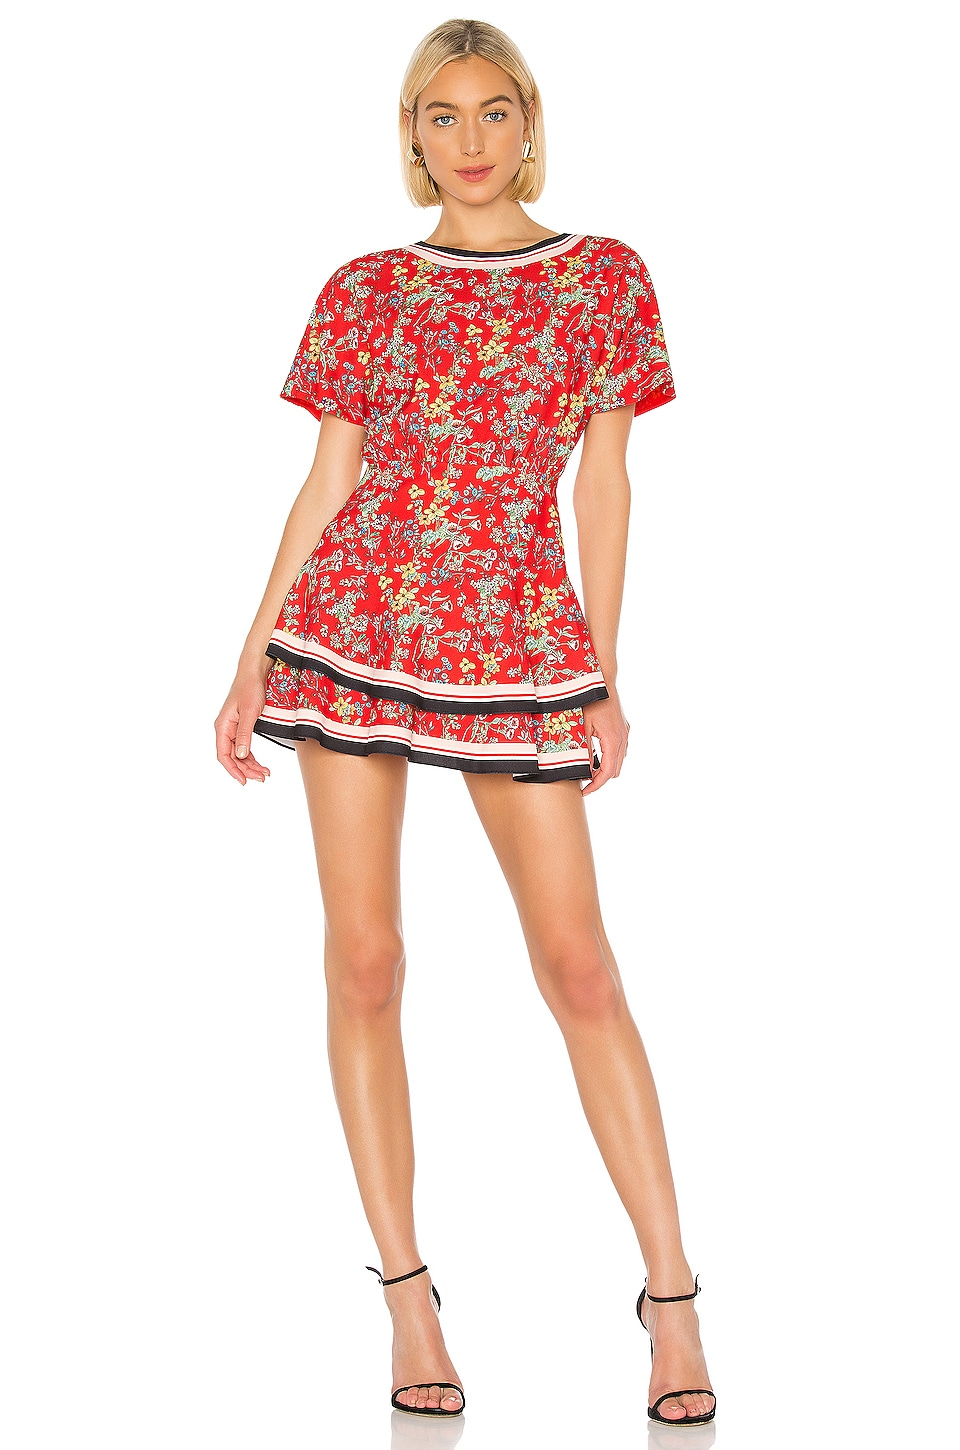 Alice + Olivia Palmira Ruffle Dress in Freesia Blossom